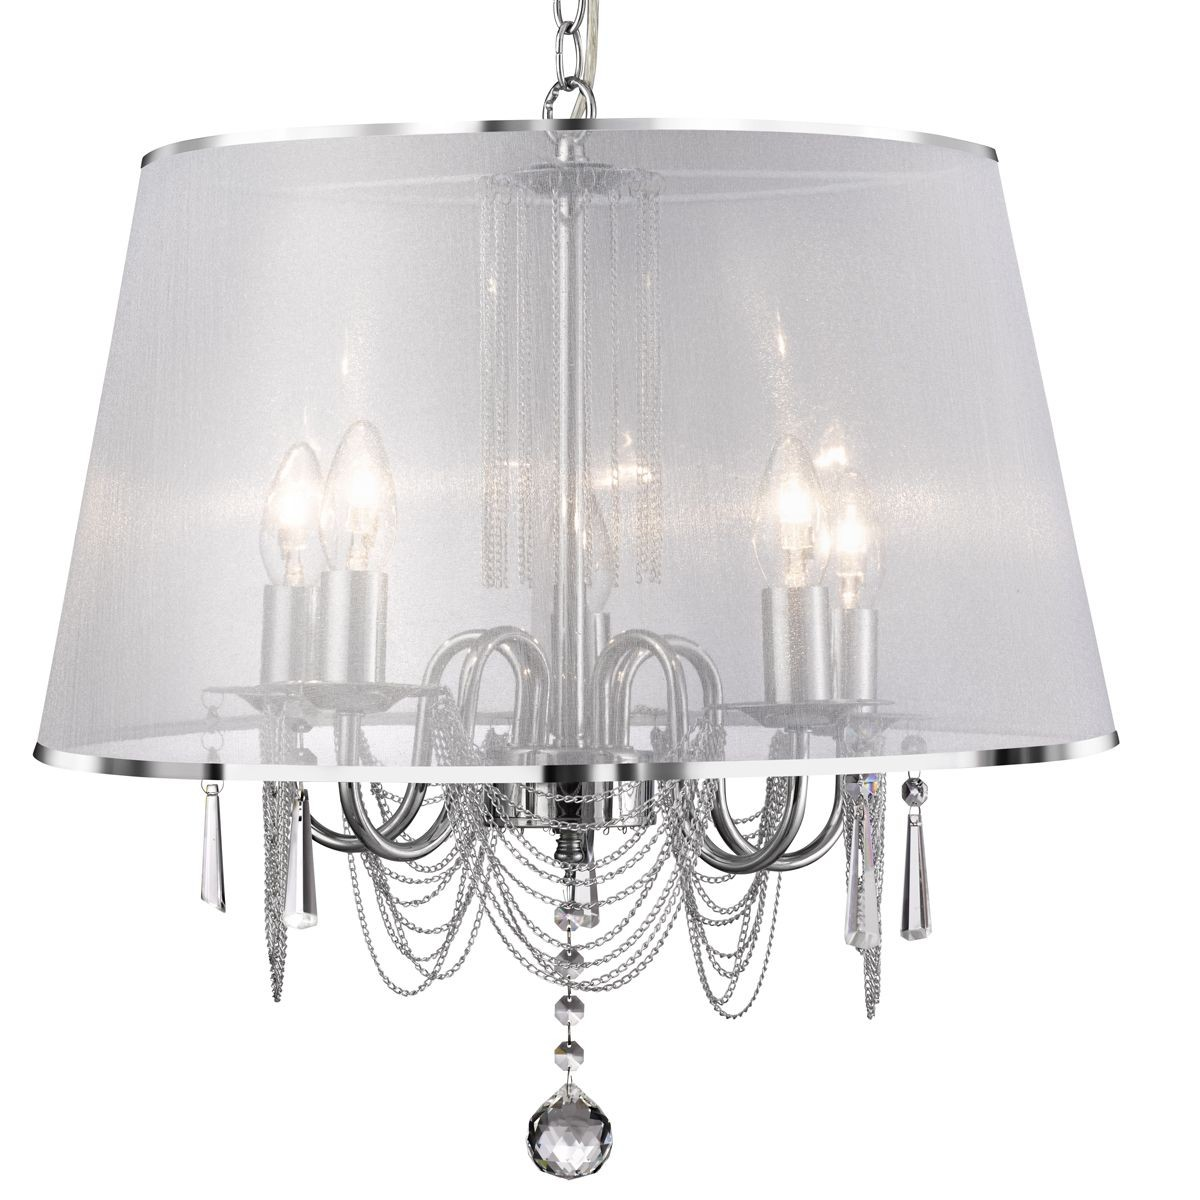 Venetian chrome ceiling light 5 light complete with shade aloadofball Gallery